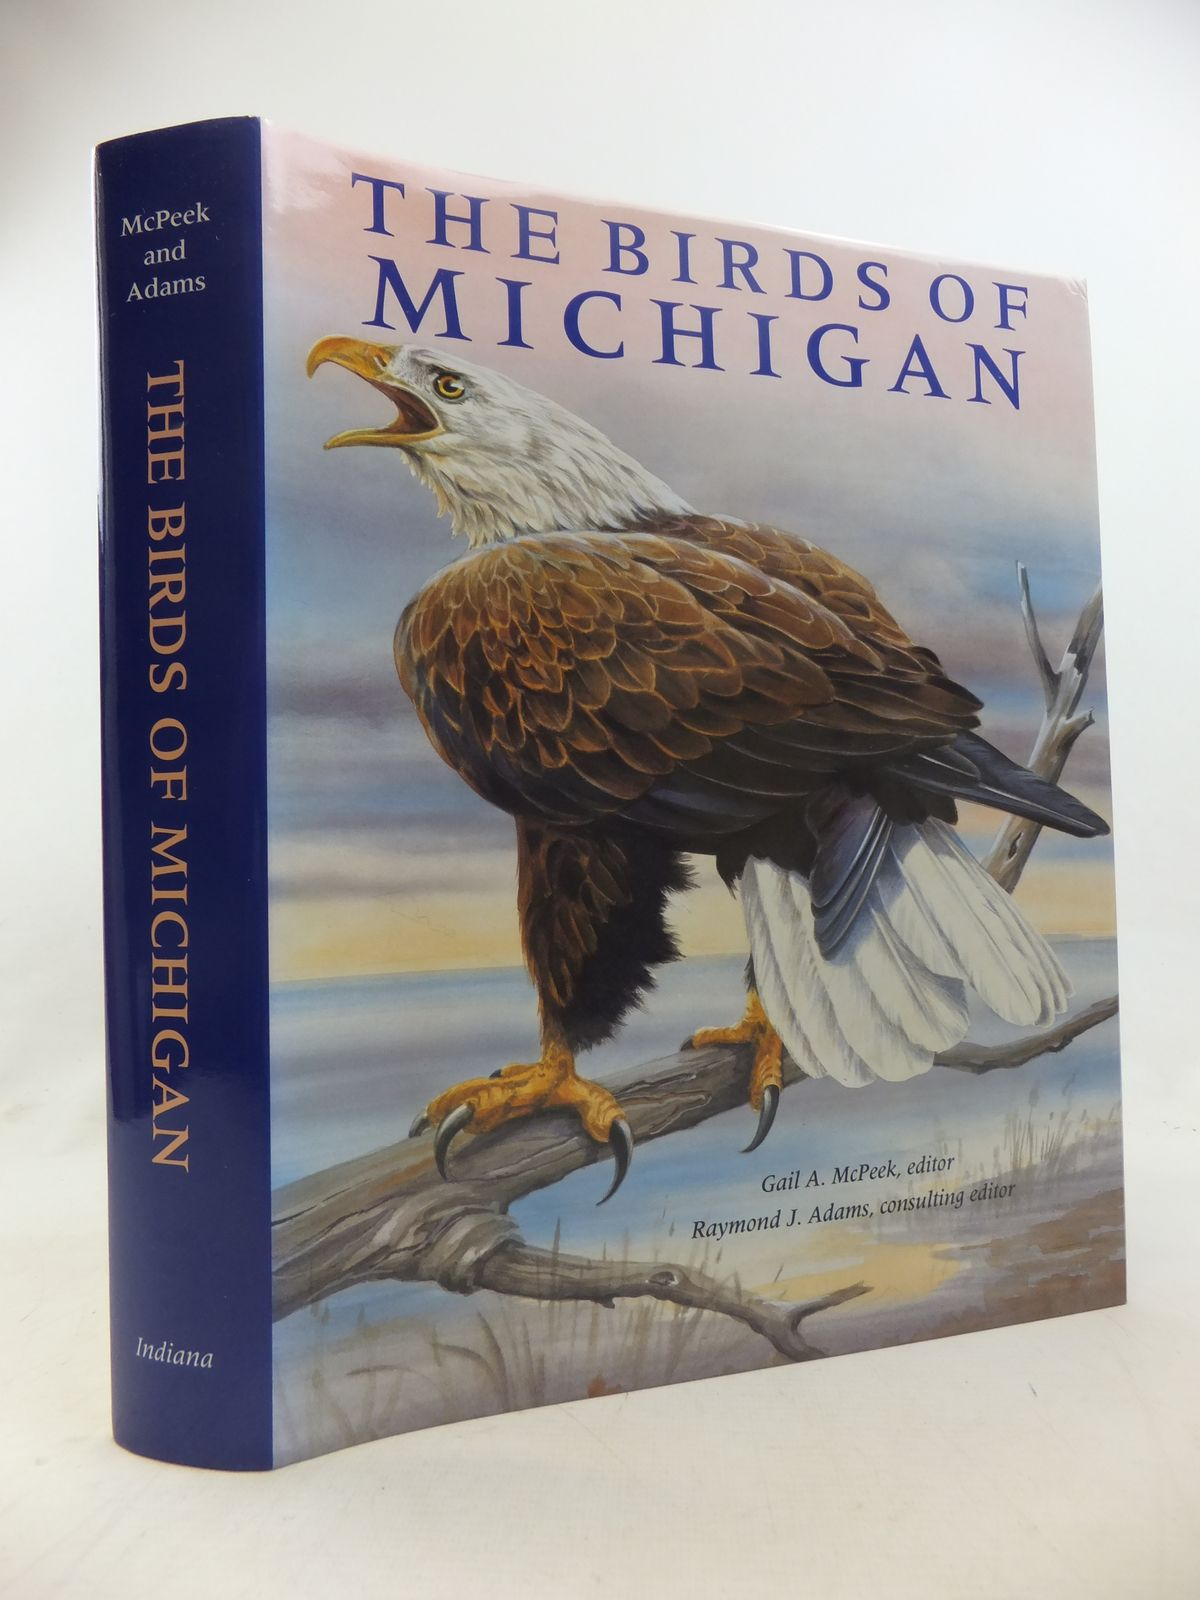 Photo of THE BIRDS OF MICHIGAN written by Granlund, James<br />McPeek, Gail A.<br />Adams, Raymond J.<br />et al, illustrated by Callog, Cyndy<br />Felsing, John<br />Hertling, Heiner<br />et al., published by Indiana University Press (STOCK CODE: 1811193)  for sale by Stella & Rose's Books